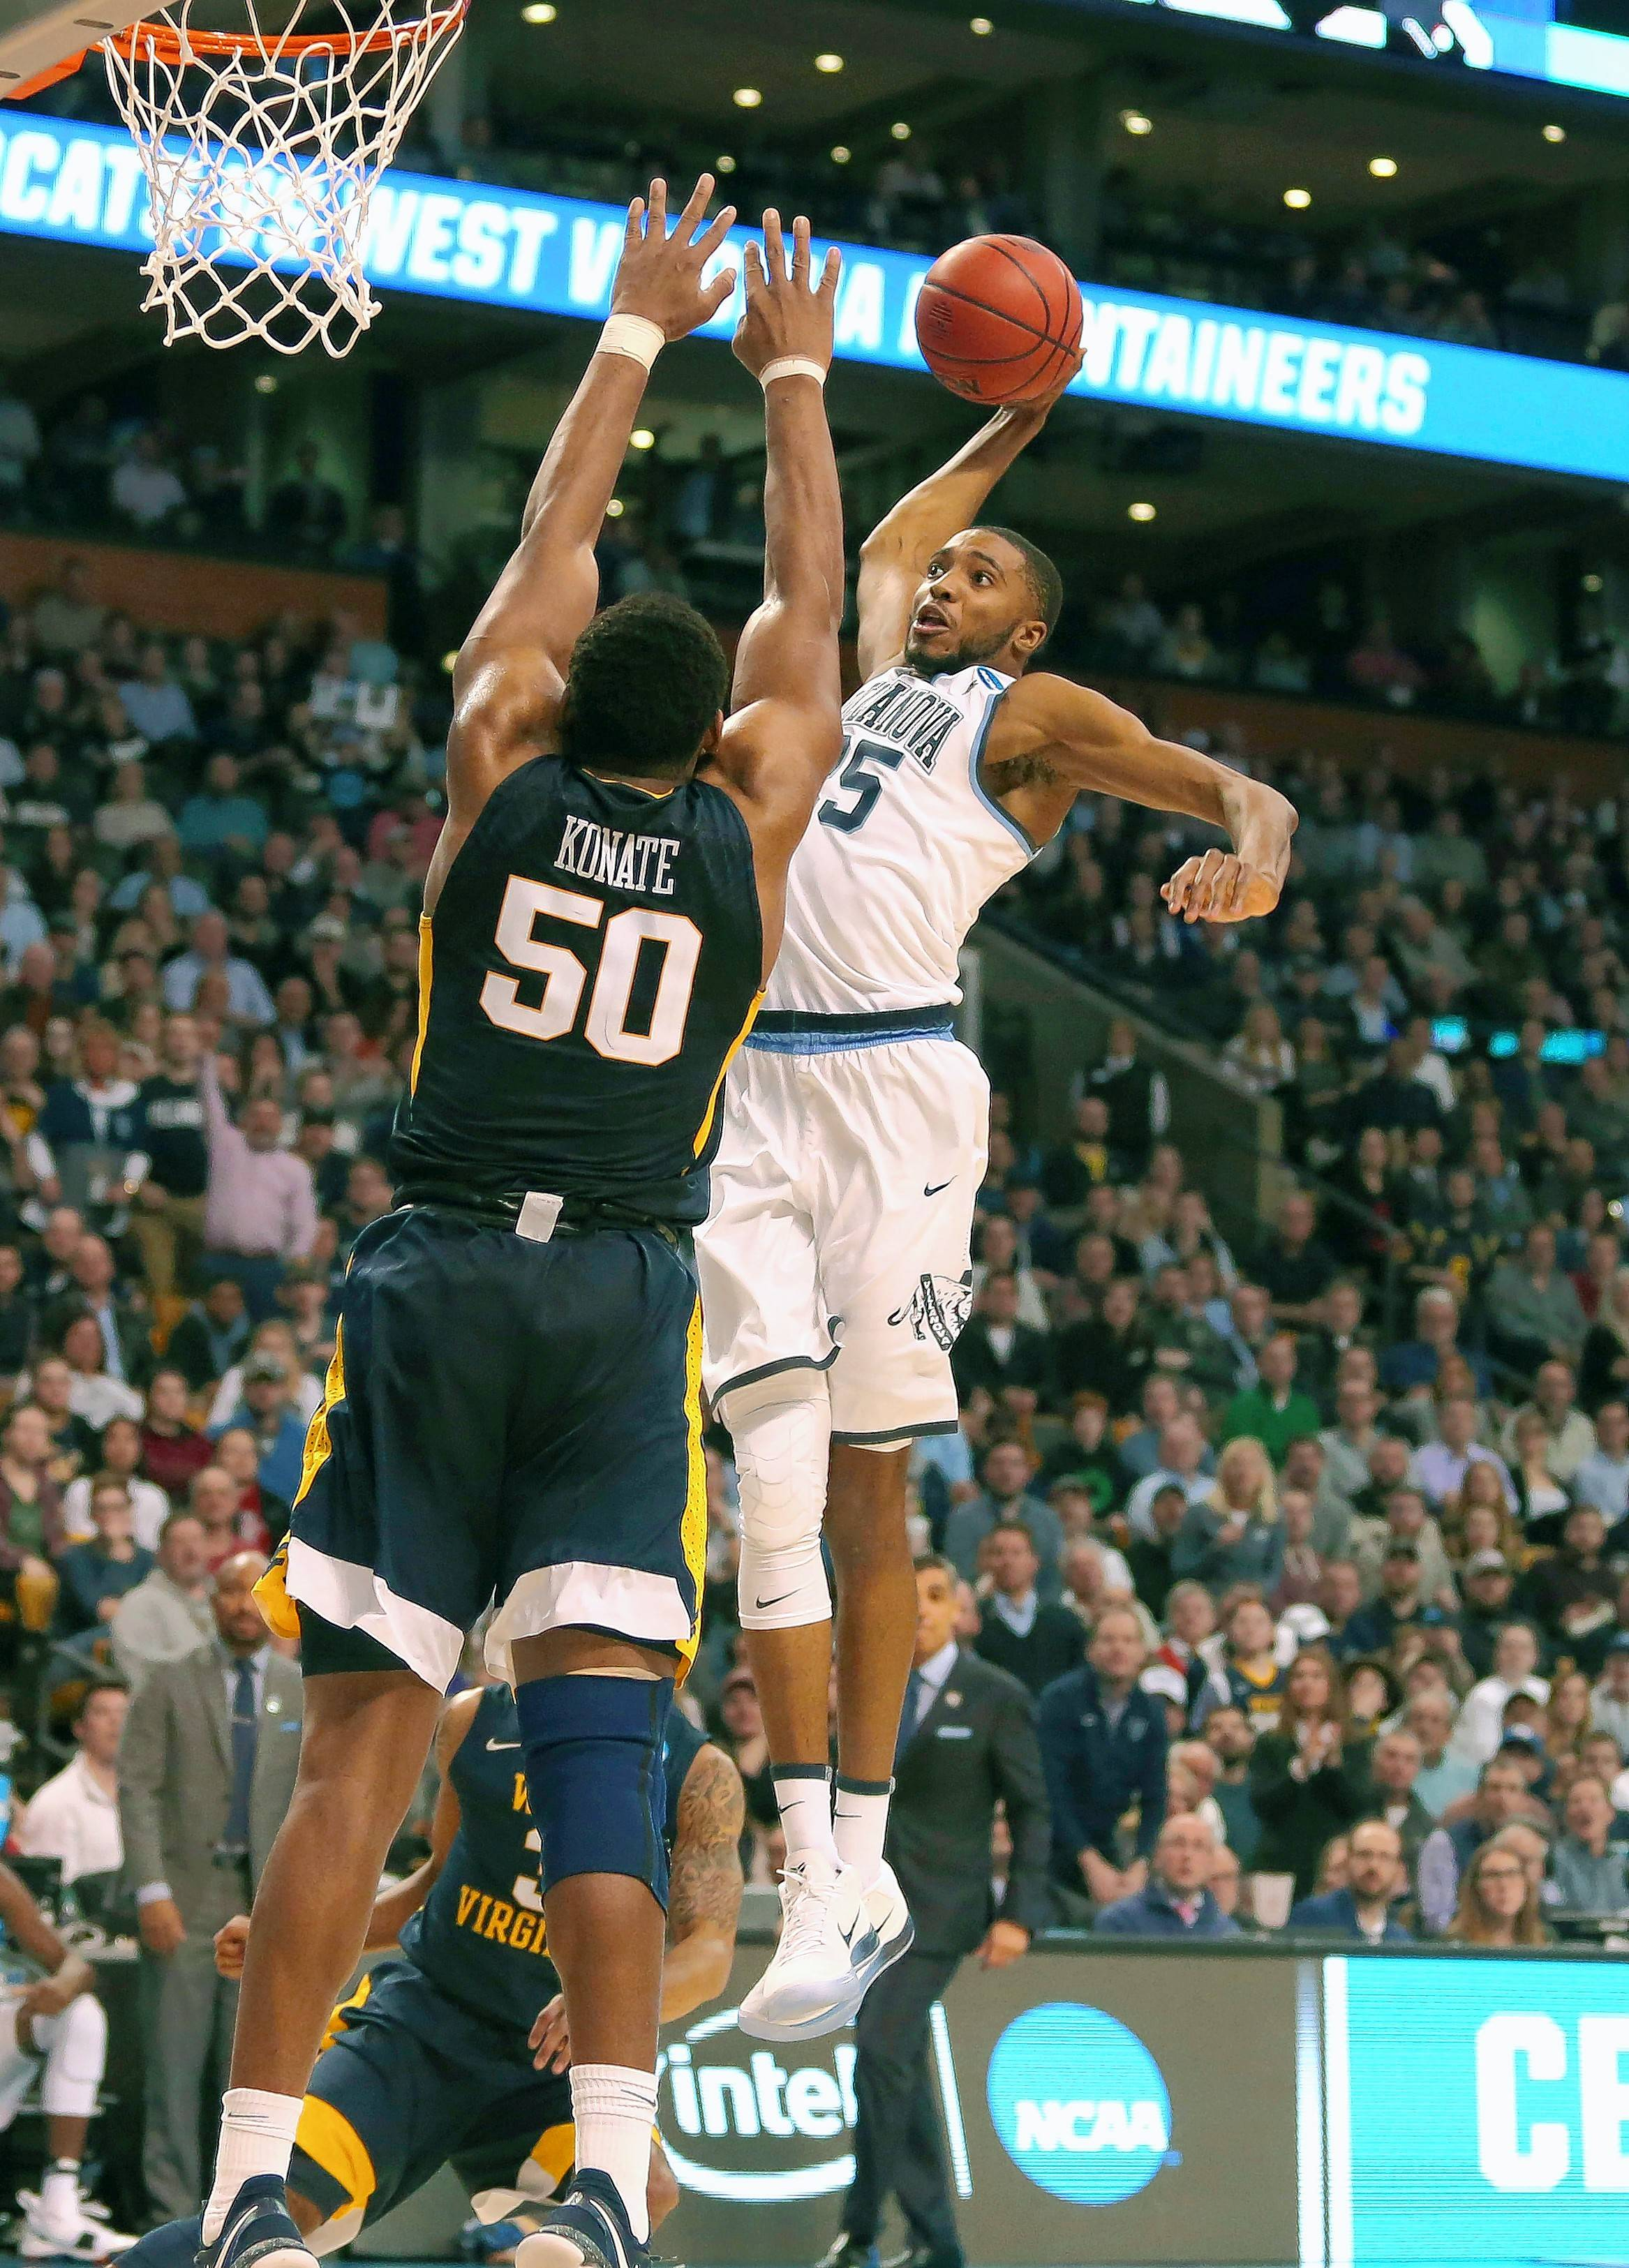 Villanova's Mikal Bridges is a 6-foot-7 guard/forward with length, athleticism and skills. A solid defender, he improved his scoring ability while leading Villanova to a national title.